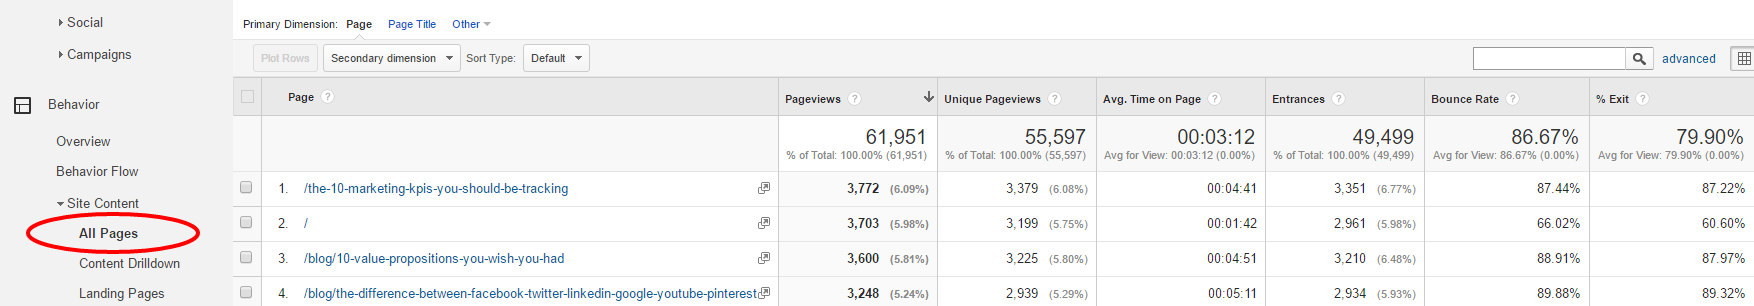 bounce rate time on page pageviews